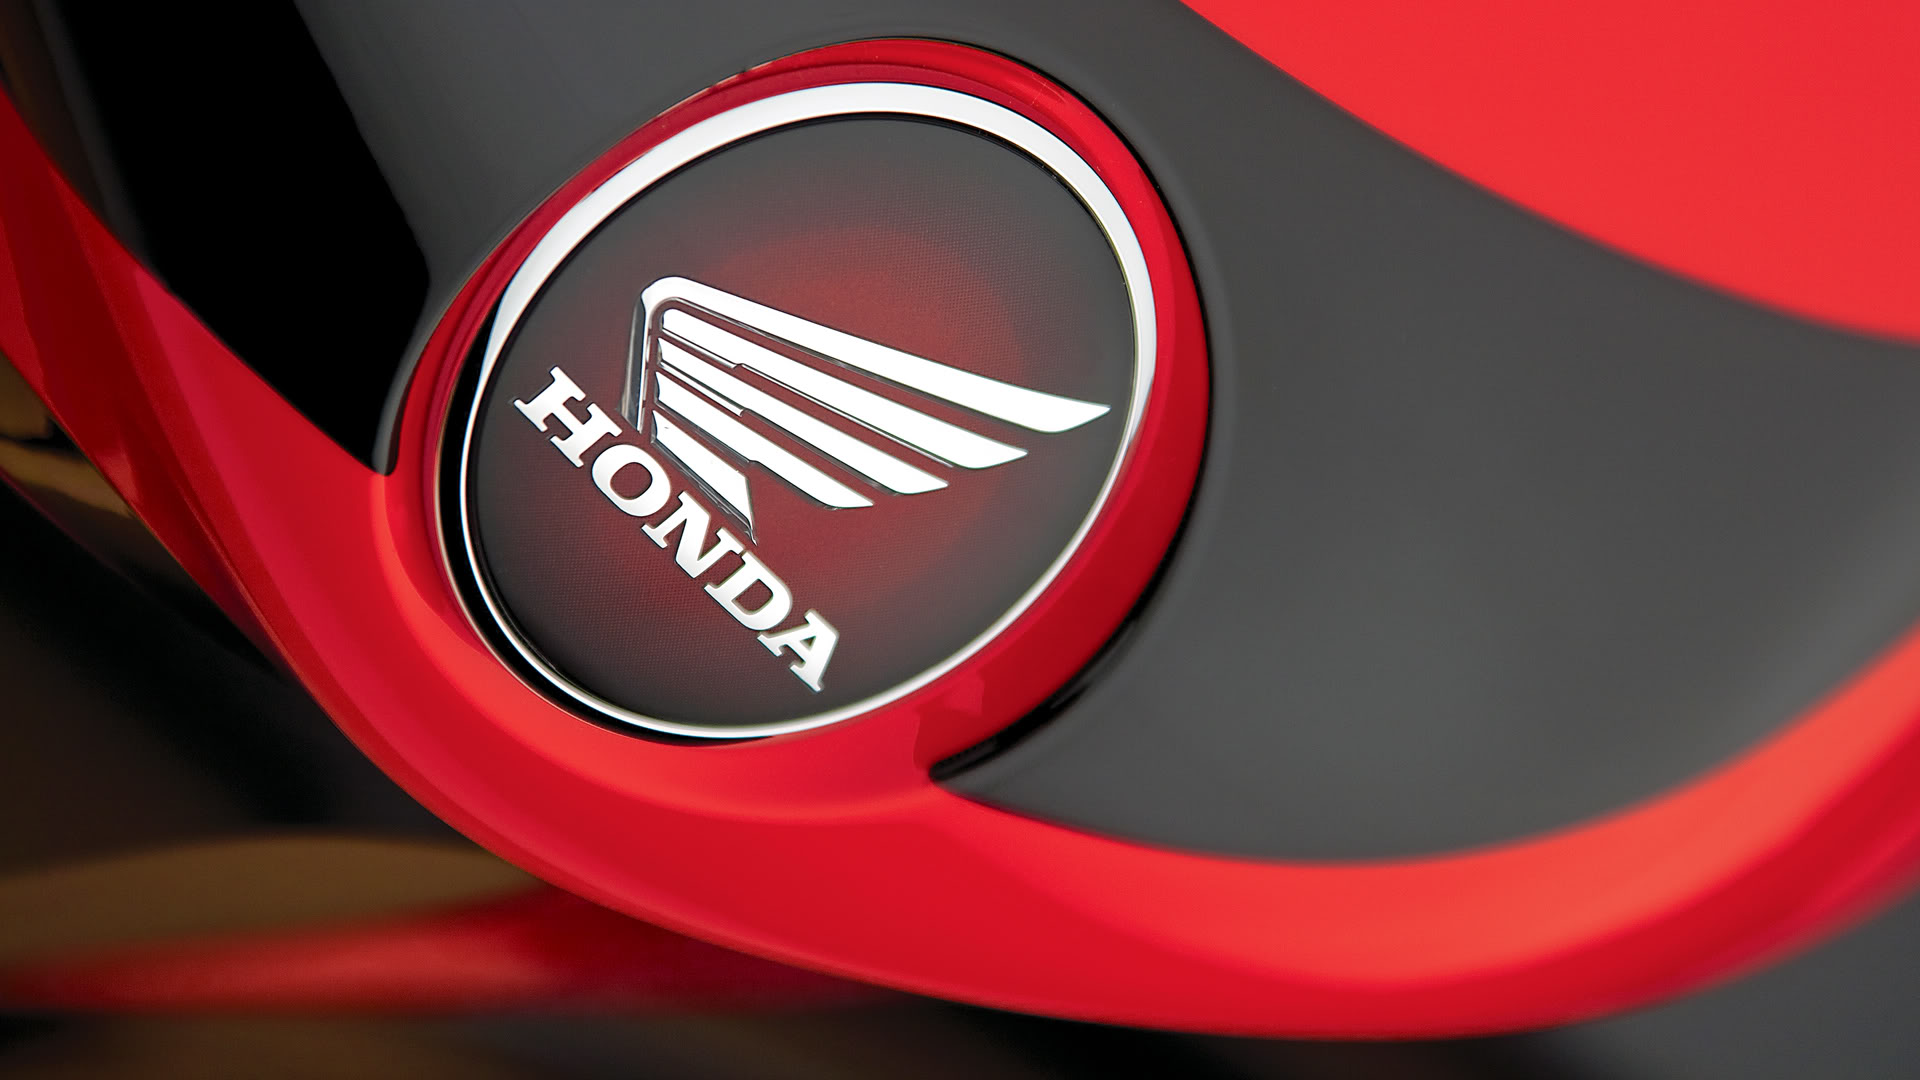 honda wallpapers 8